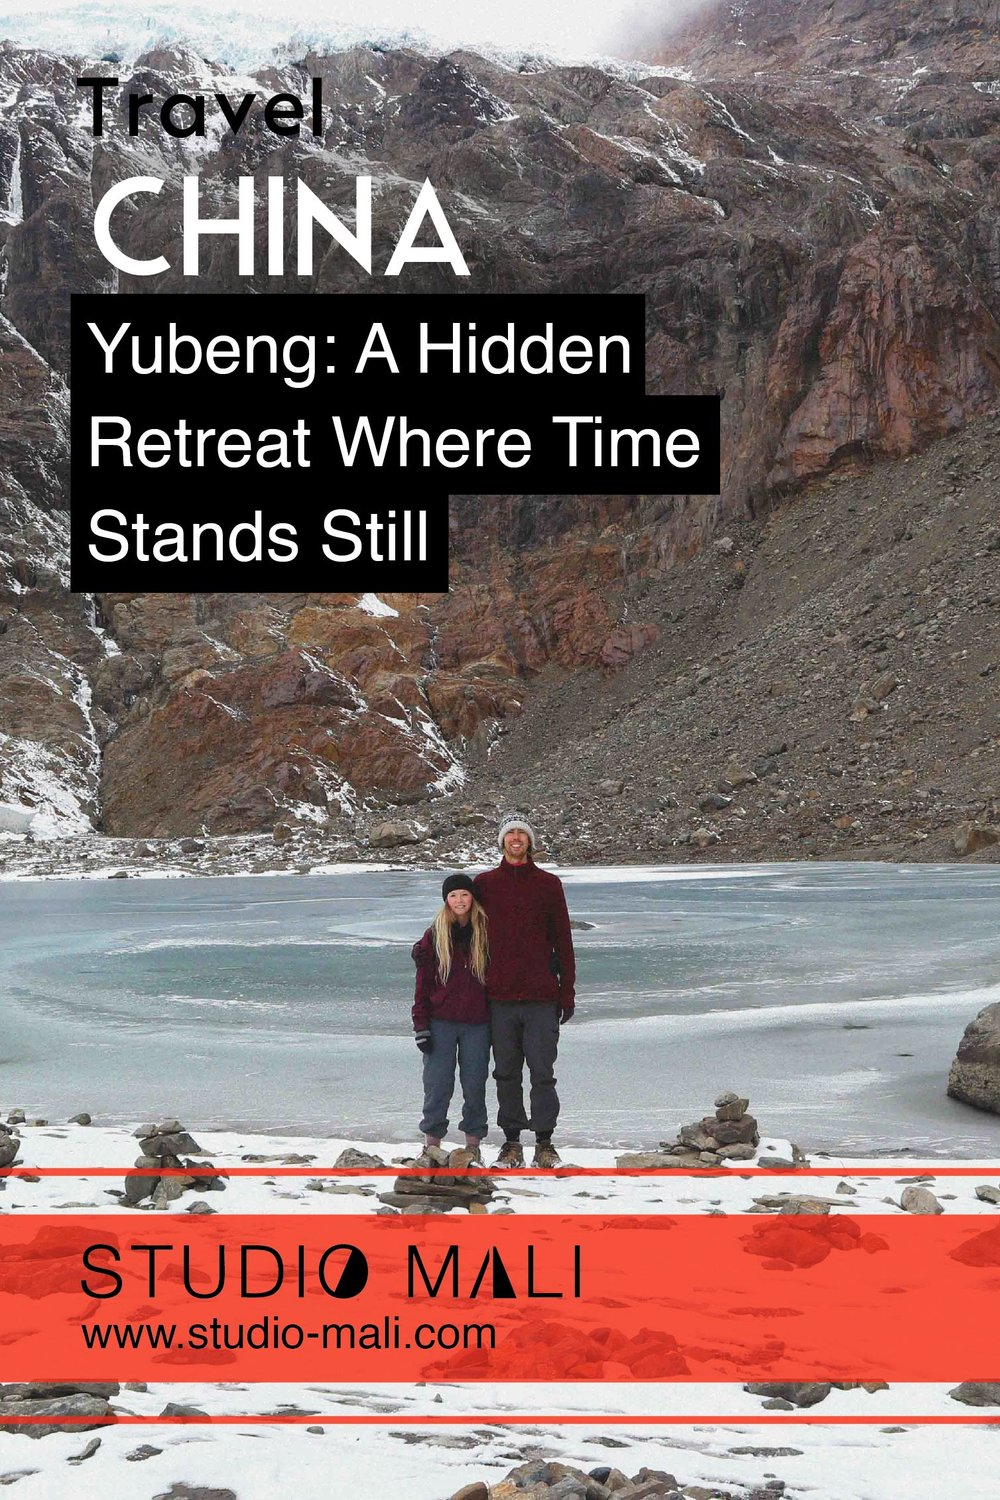 Yubeng: A Hidden Retreat Where Time Stands Still, by Studio Mali